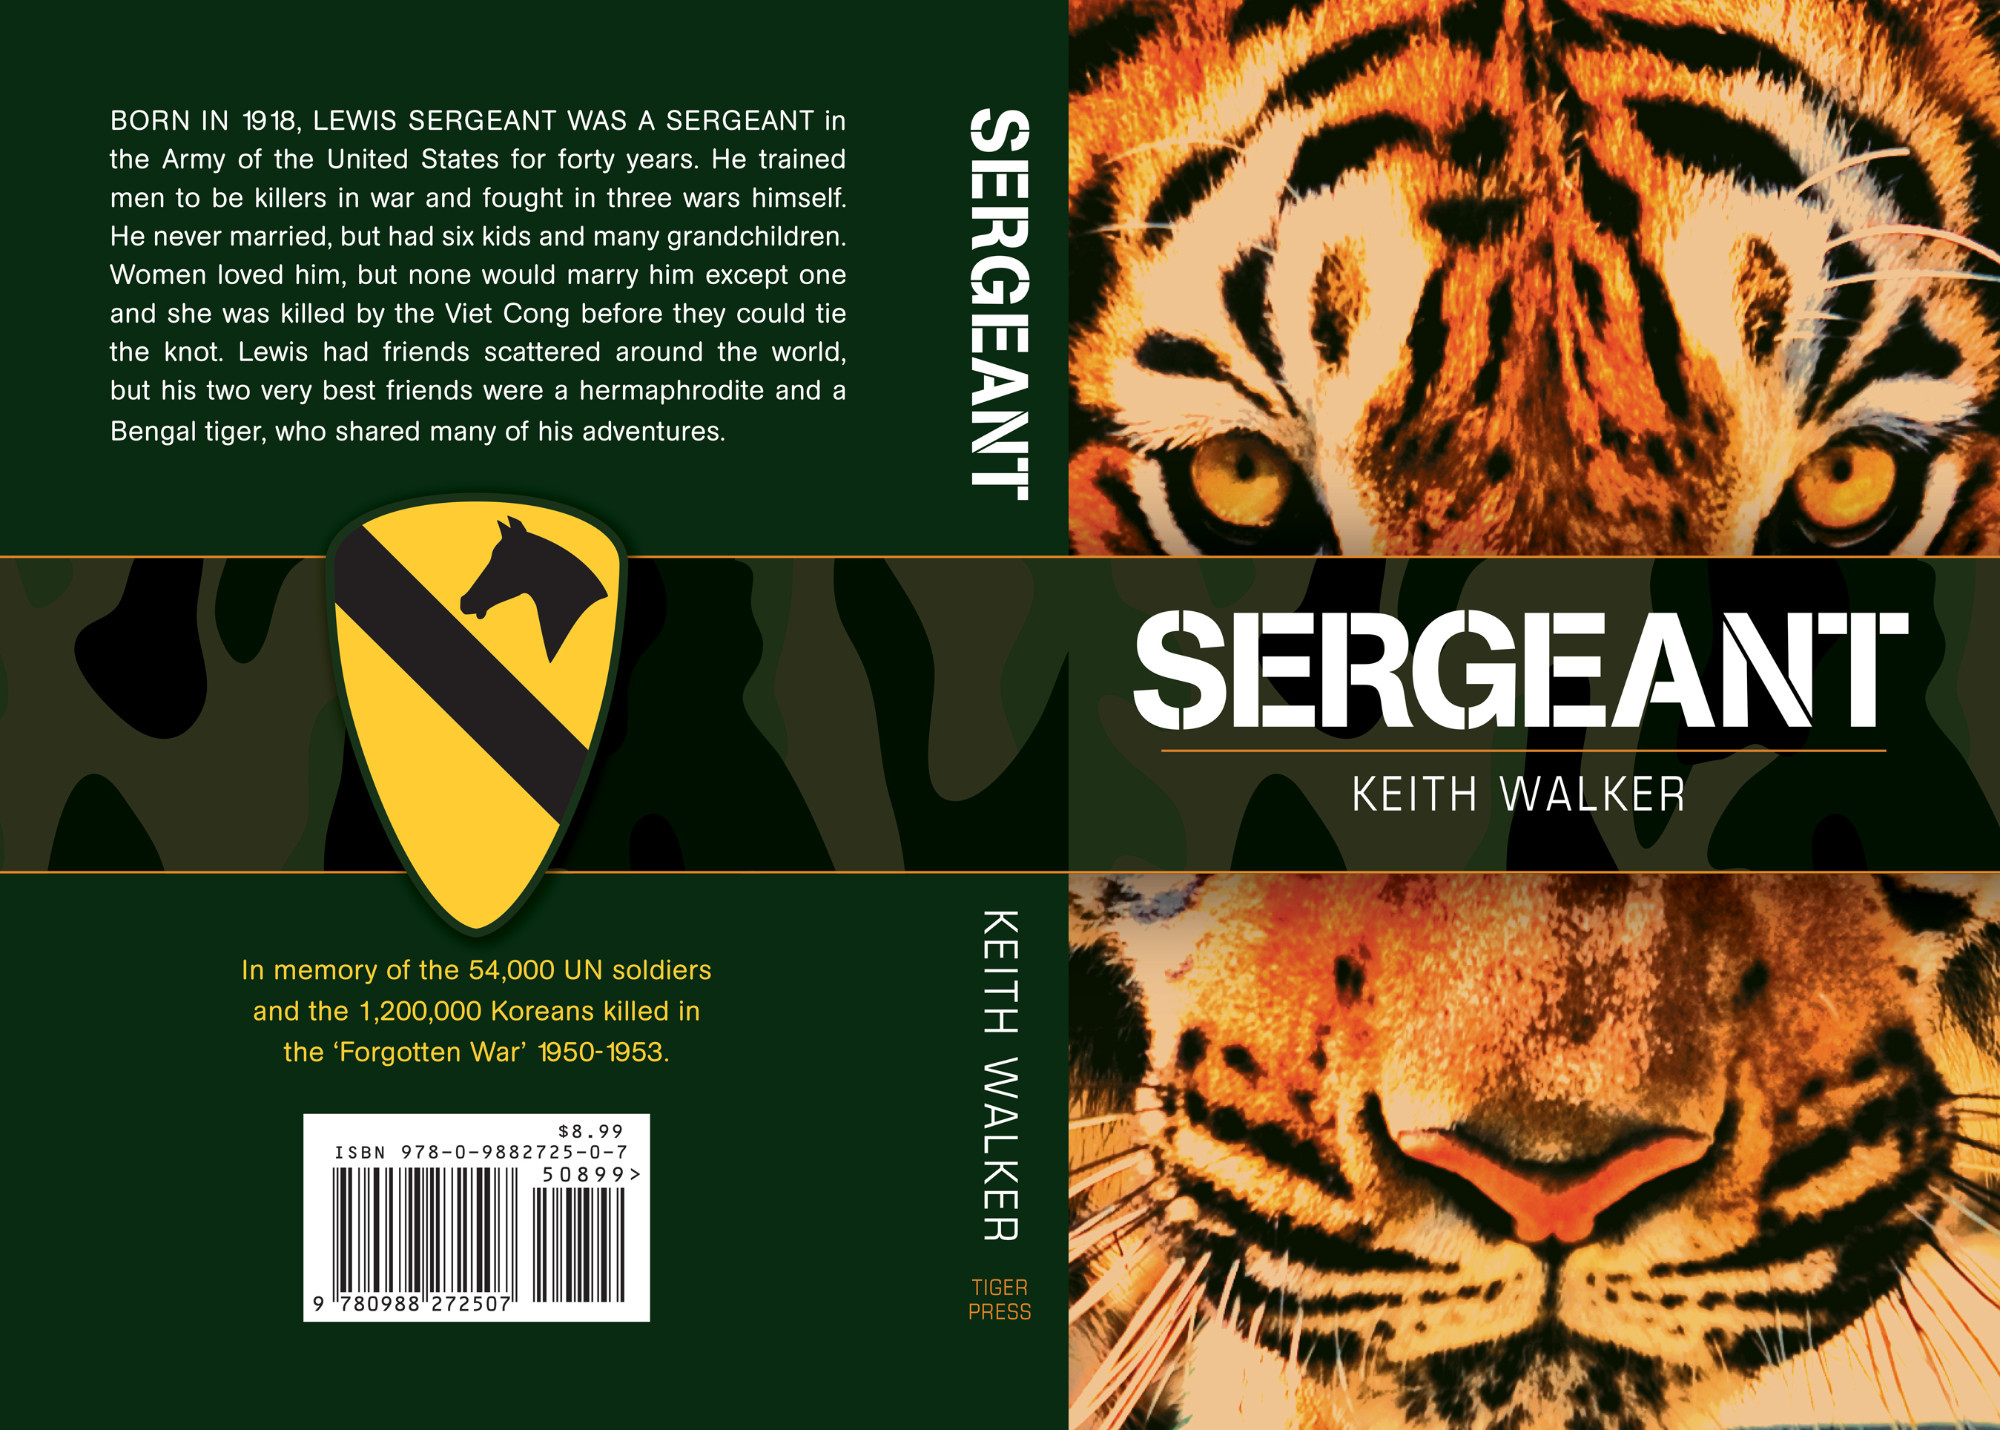 SERGEANT_CoverSpread_Final_591-160.jpg